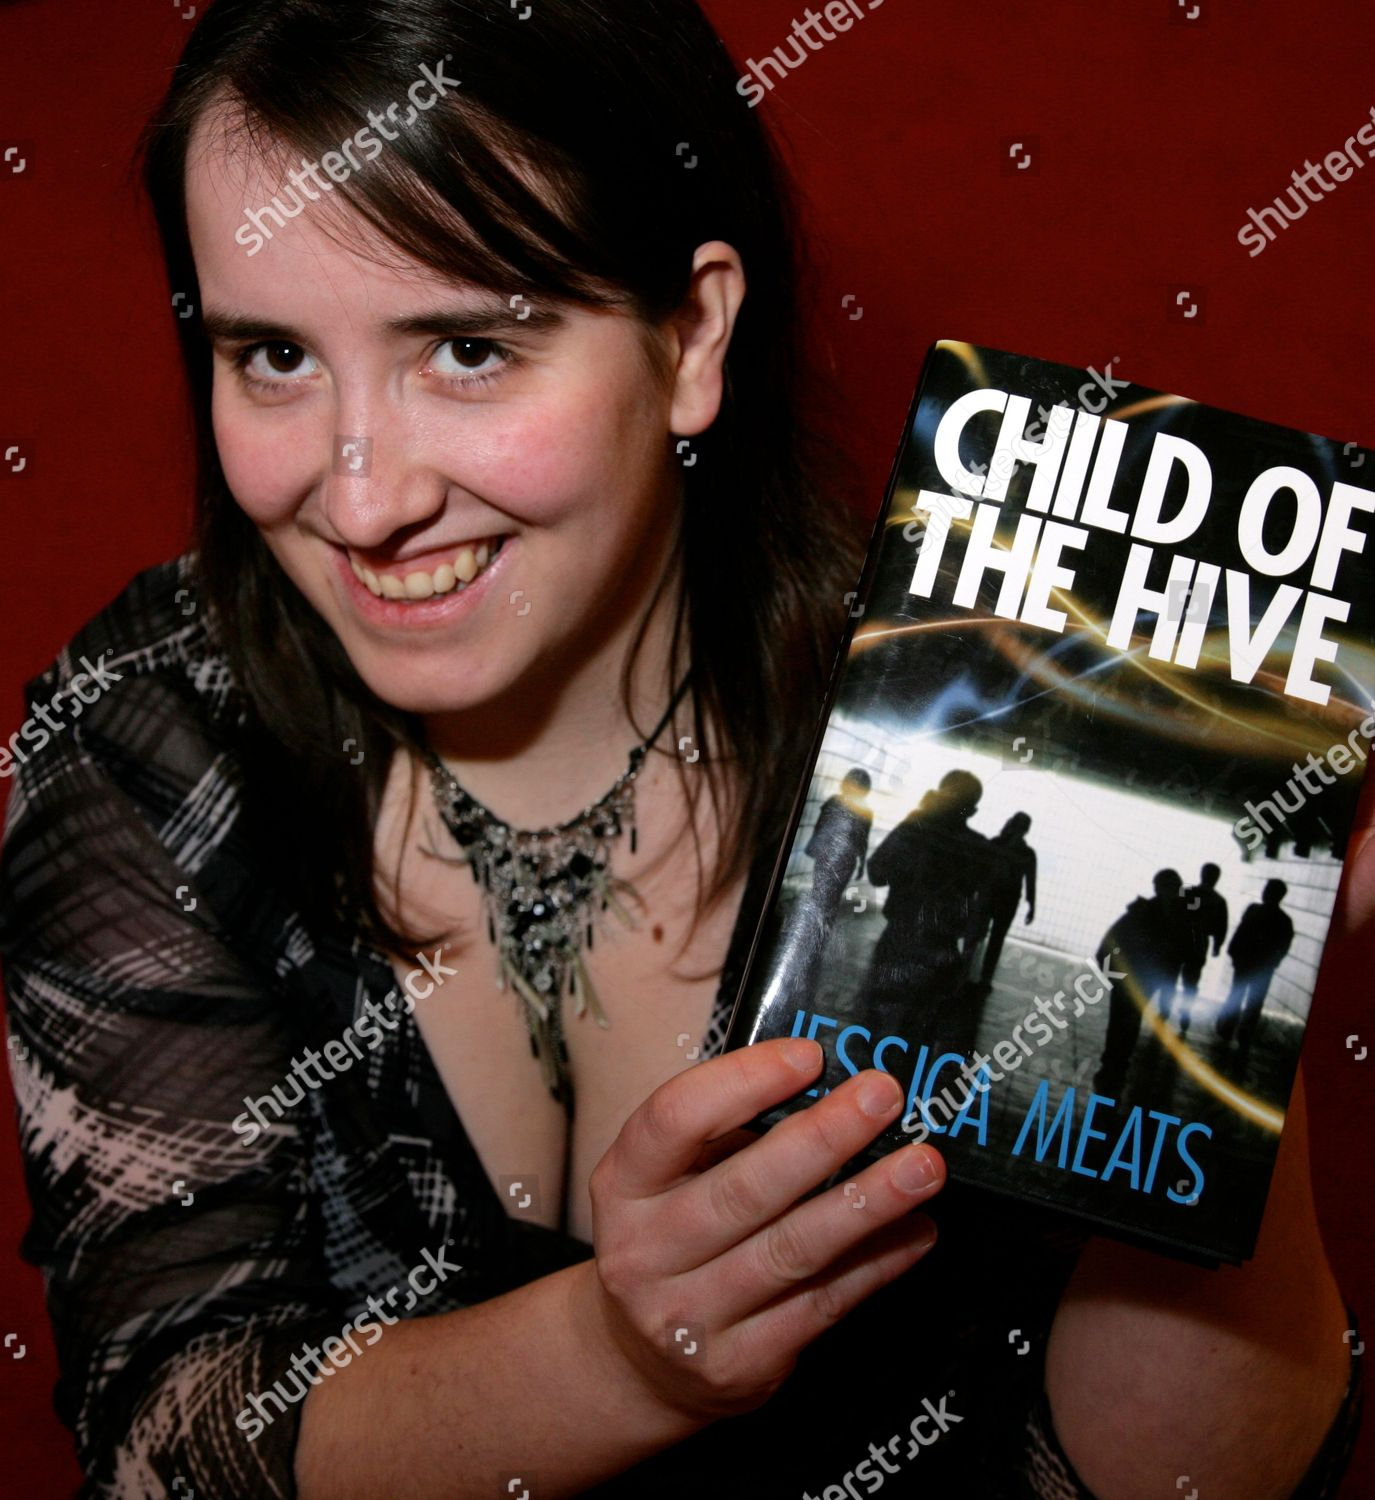 'Child Of The Hive' Jessica Meats Book Promotion, Waterstones, Reading, Britain - 13 Feb 2010的庫存照片